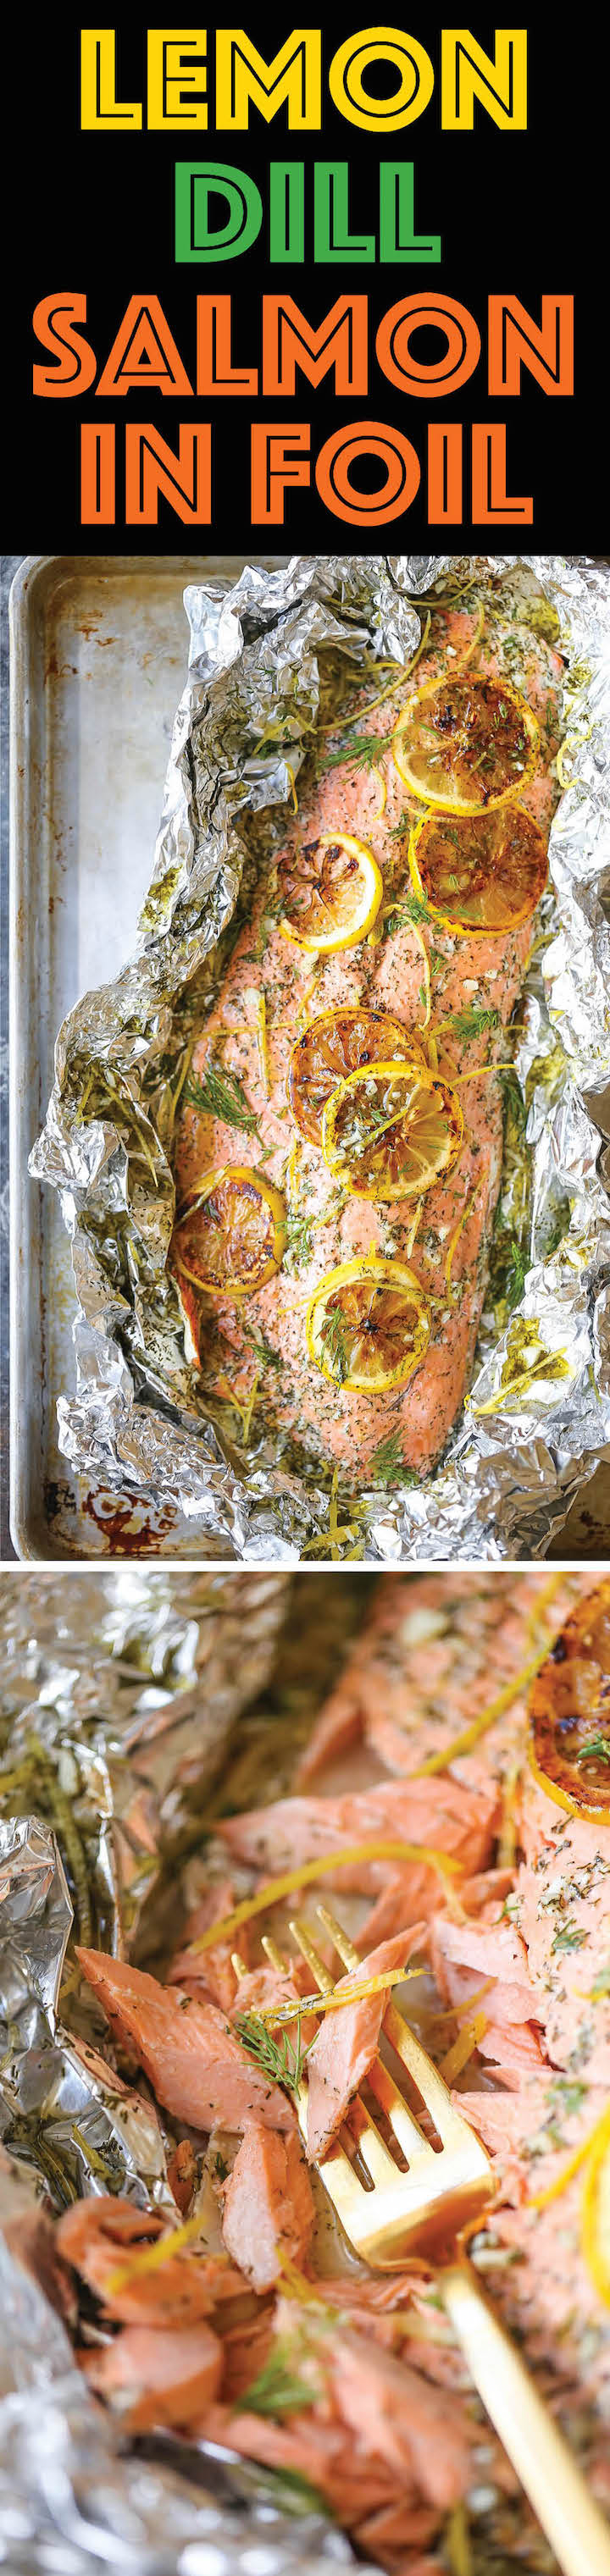 Lemon Dill Salmon in Foil - Seriously dead-simple salmon cooked right in foil! 10 minutes prep. No clean-up! And you know lemon-dill flavors are THE BEST!